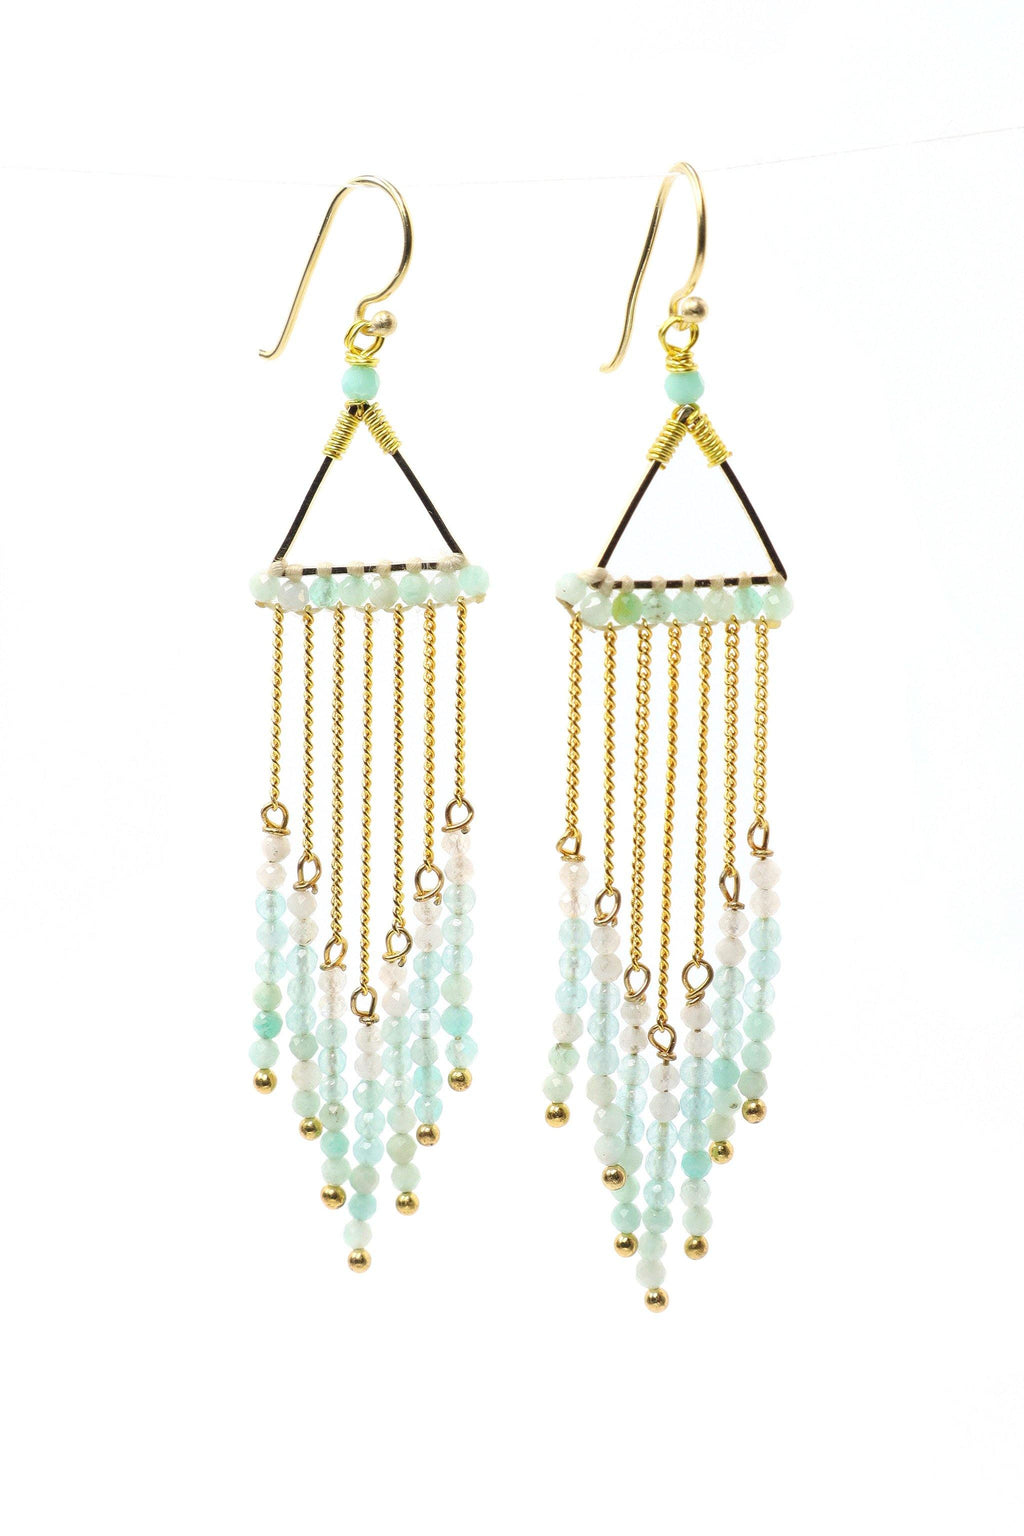 Celeste Earrings - Light Blue - Filosophy